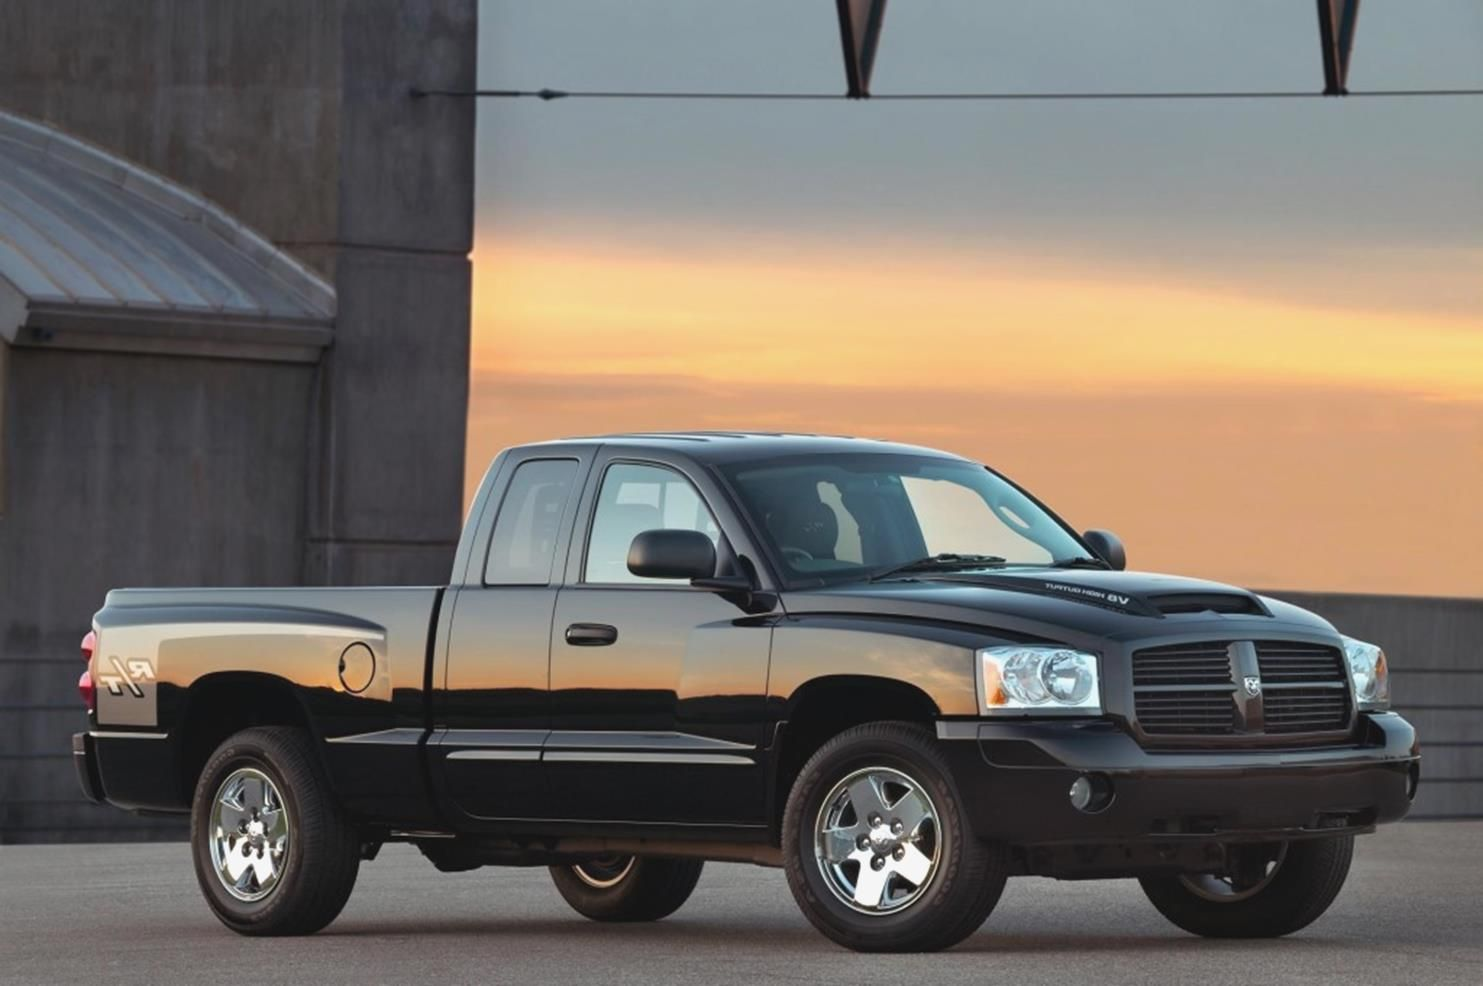 M s de 25 ideas incre bles sobre dodge dakota 2015 en pinterest dodge dakota desafiador de dodge hemi y dodge ram 2015